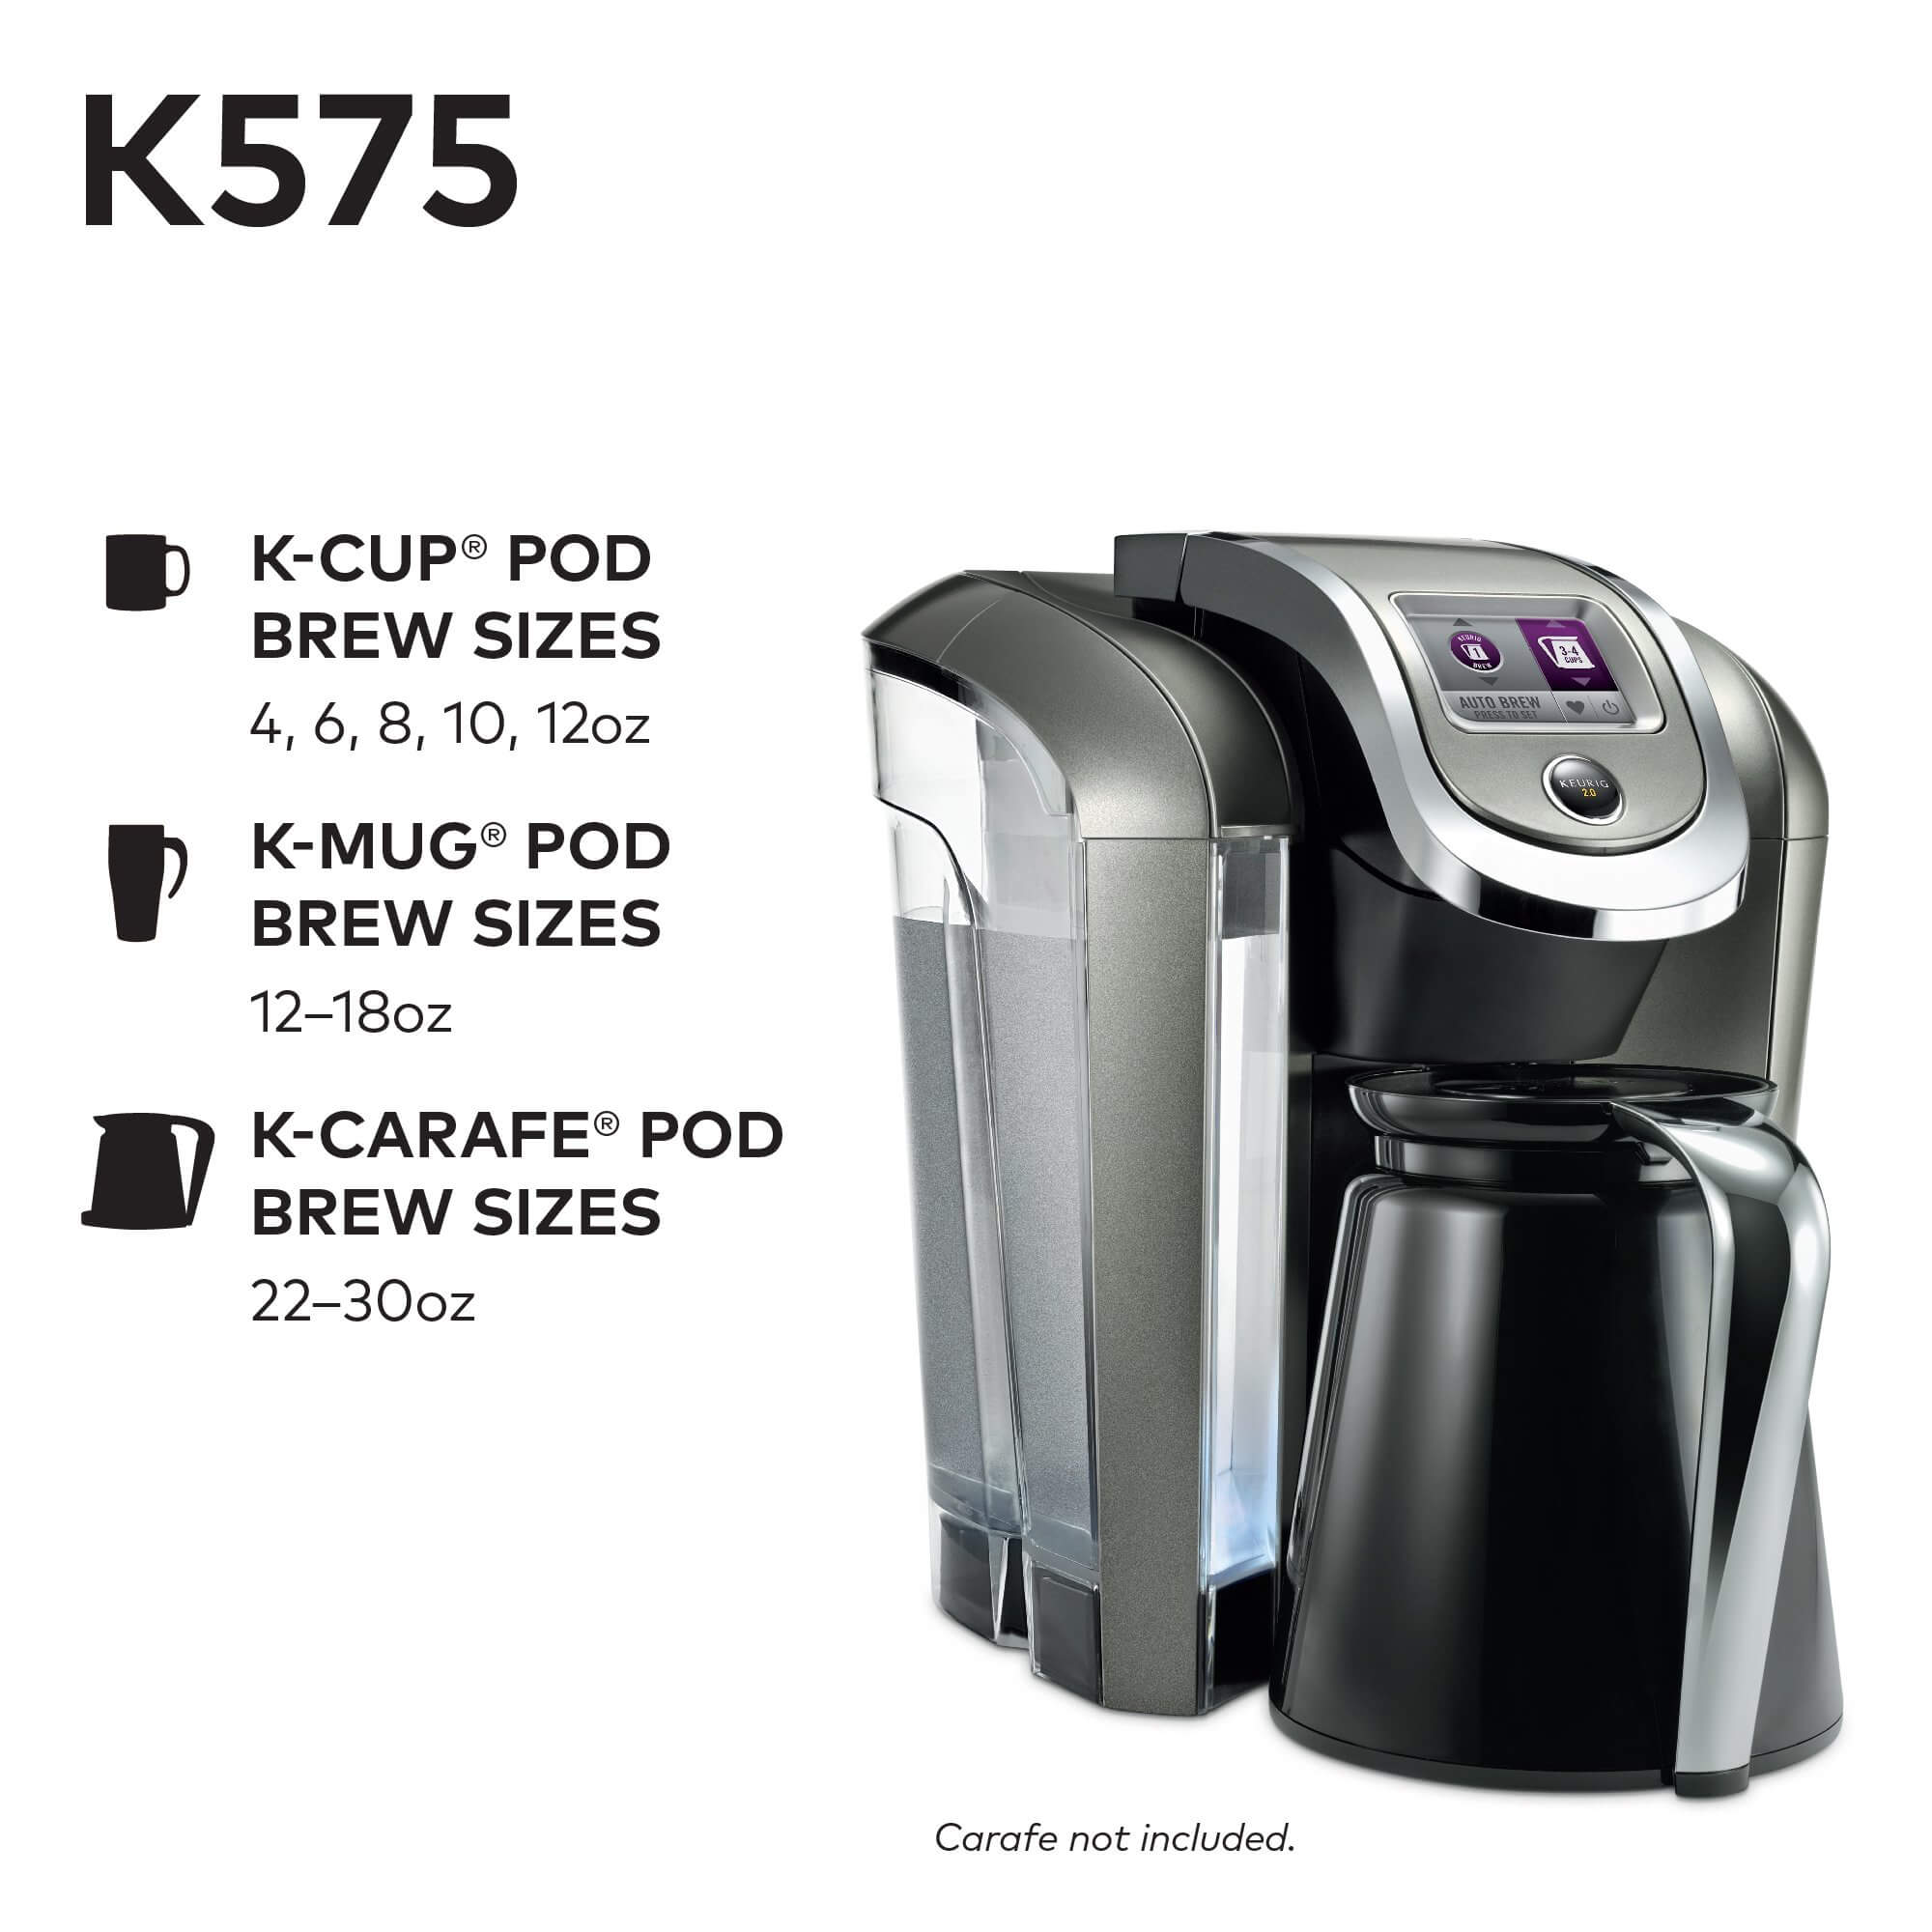 Keurig K575 Single Serve K-Cup Pod Coffee Brewer, best coffee machine with grinder, coffeemaker, best keurig